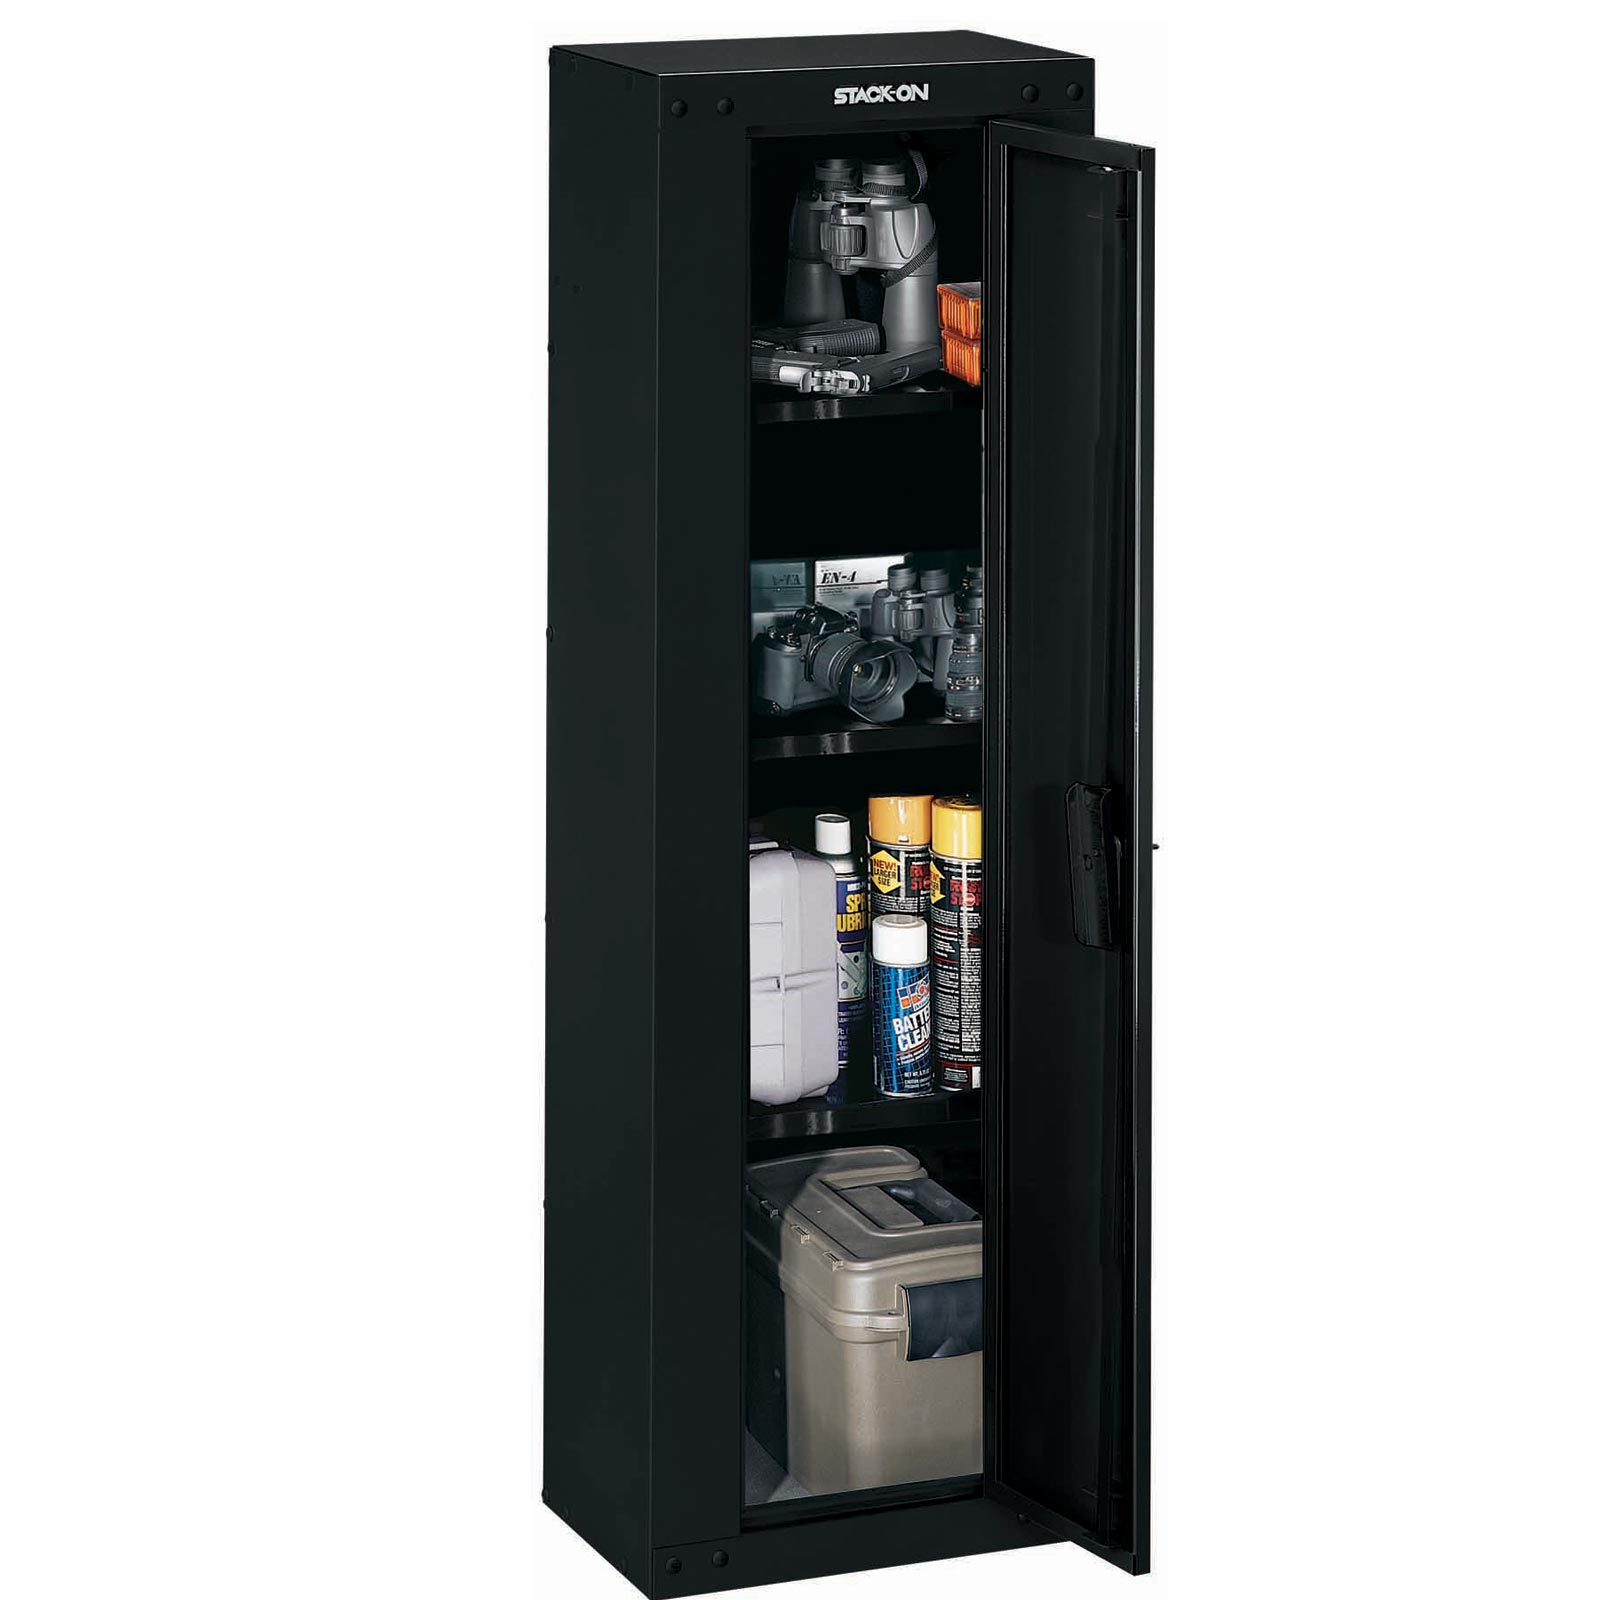 You Assemble Kitchen Cabinets: Stack-On GCB-5300RTA Pistol Cabinet Ready To Assemble